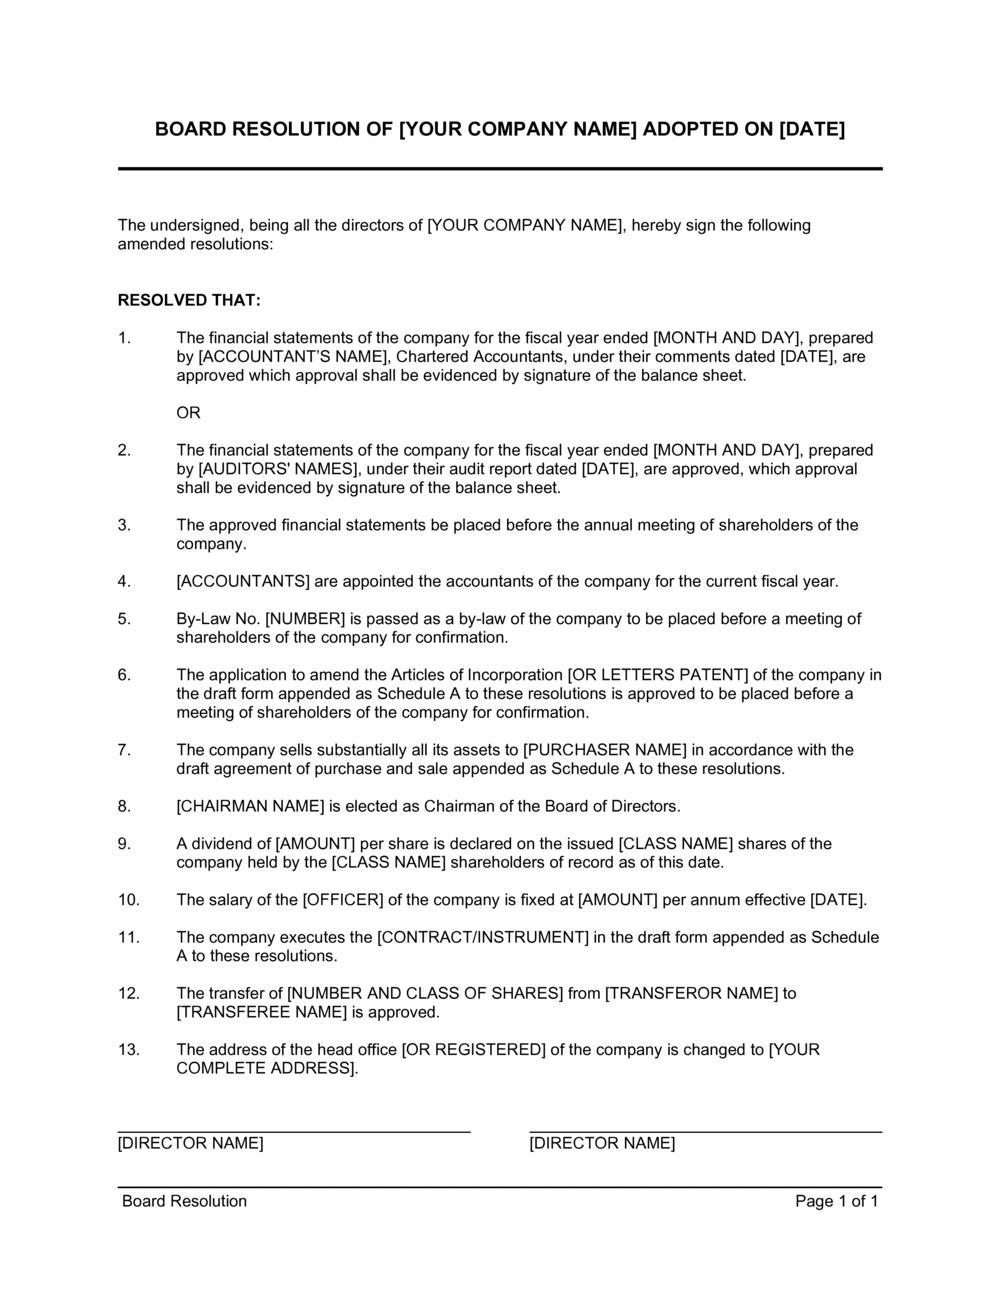 Business-in-a-Box's Board Resolution Template